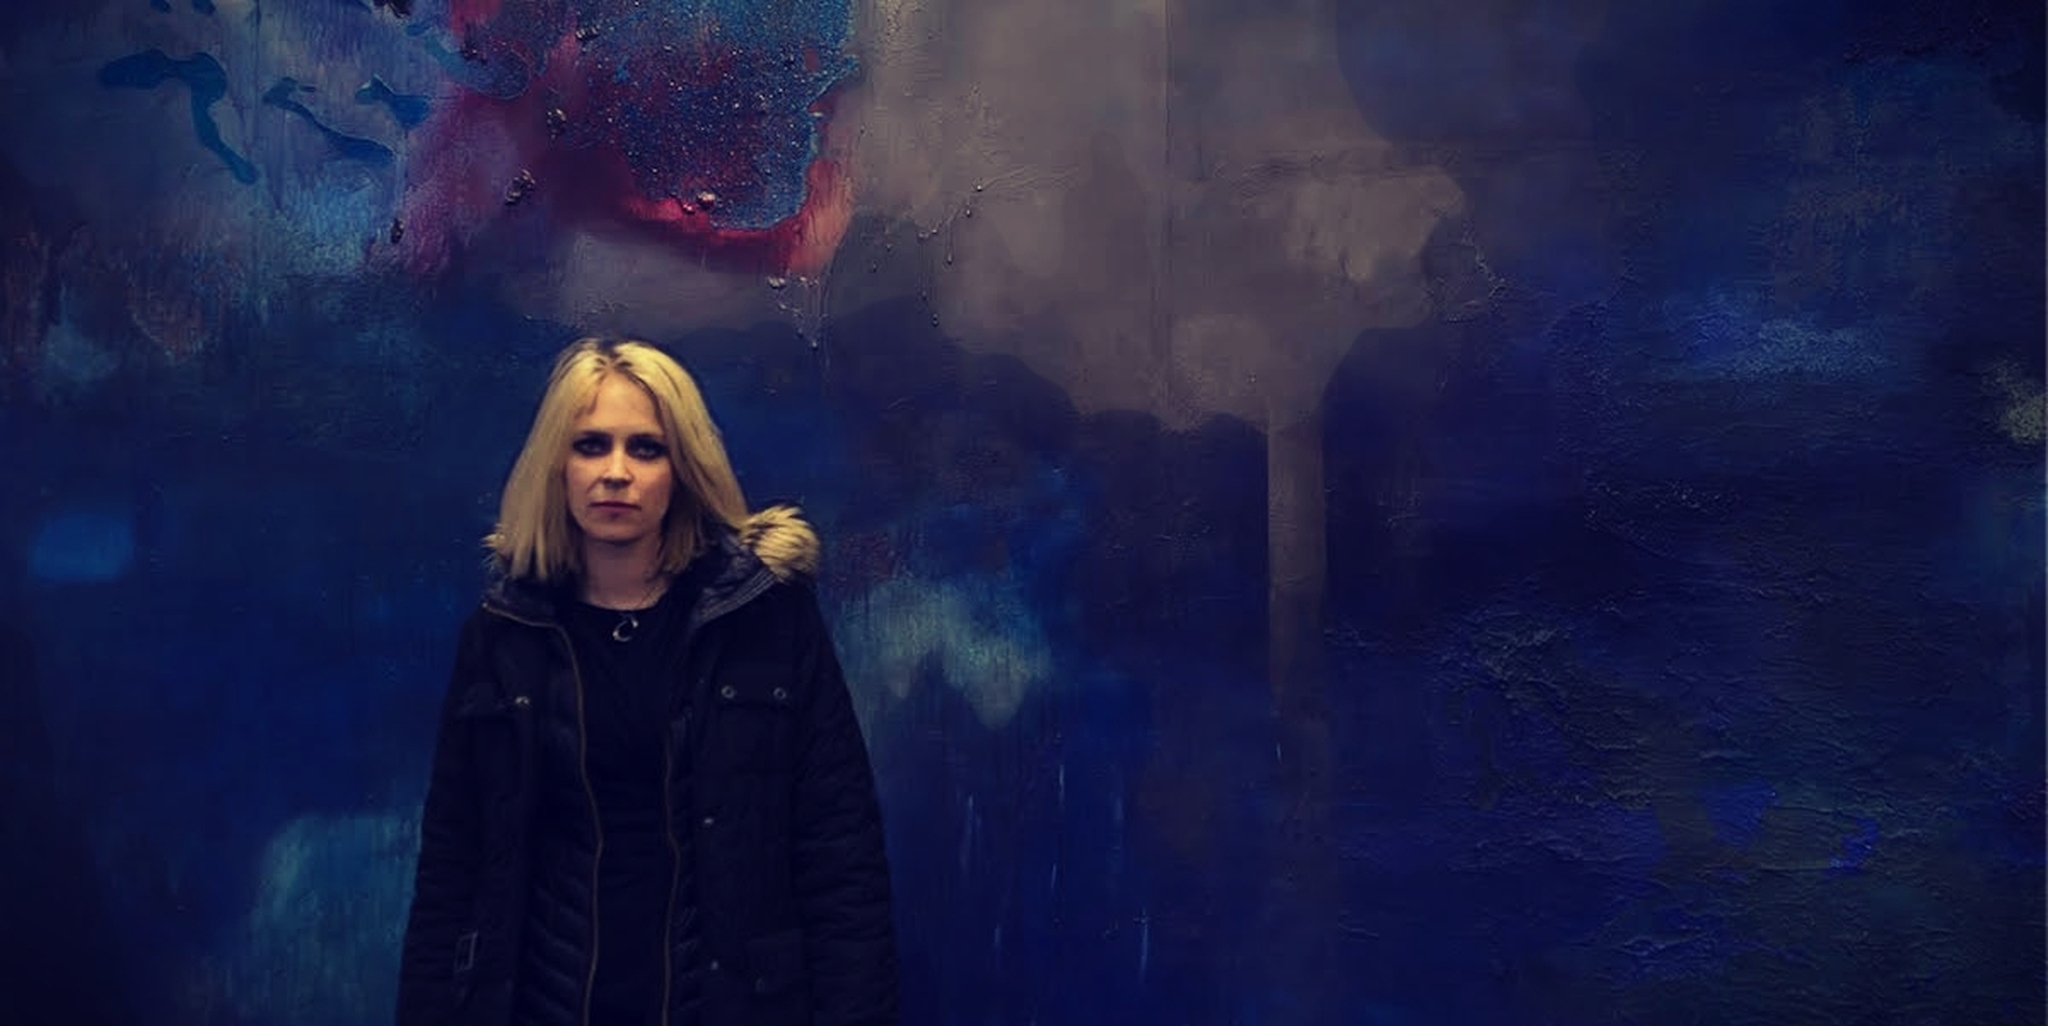 Sara, the head of the Icelandic protest movement, standing in front of painting.